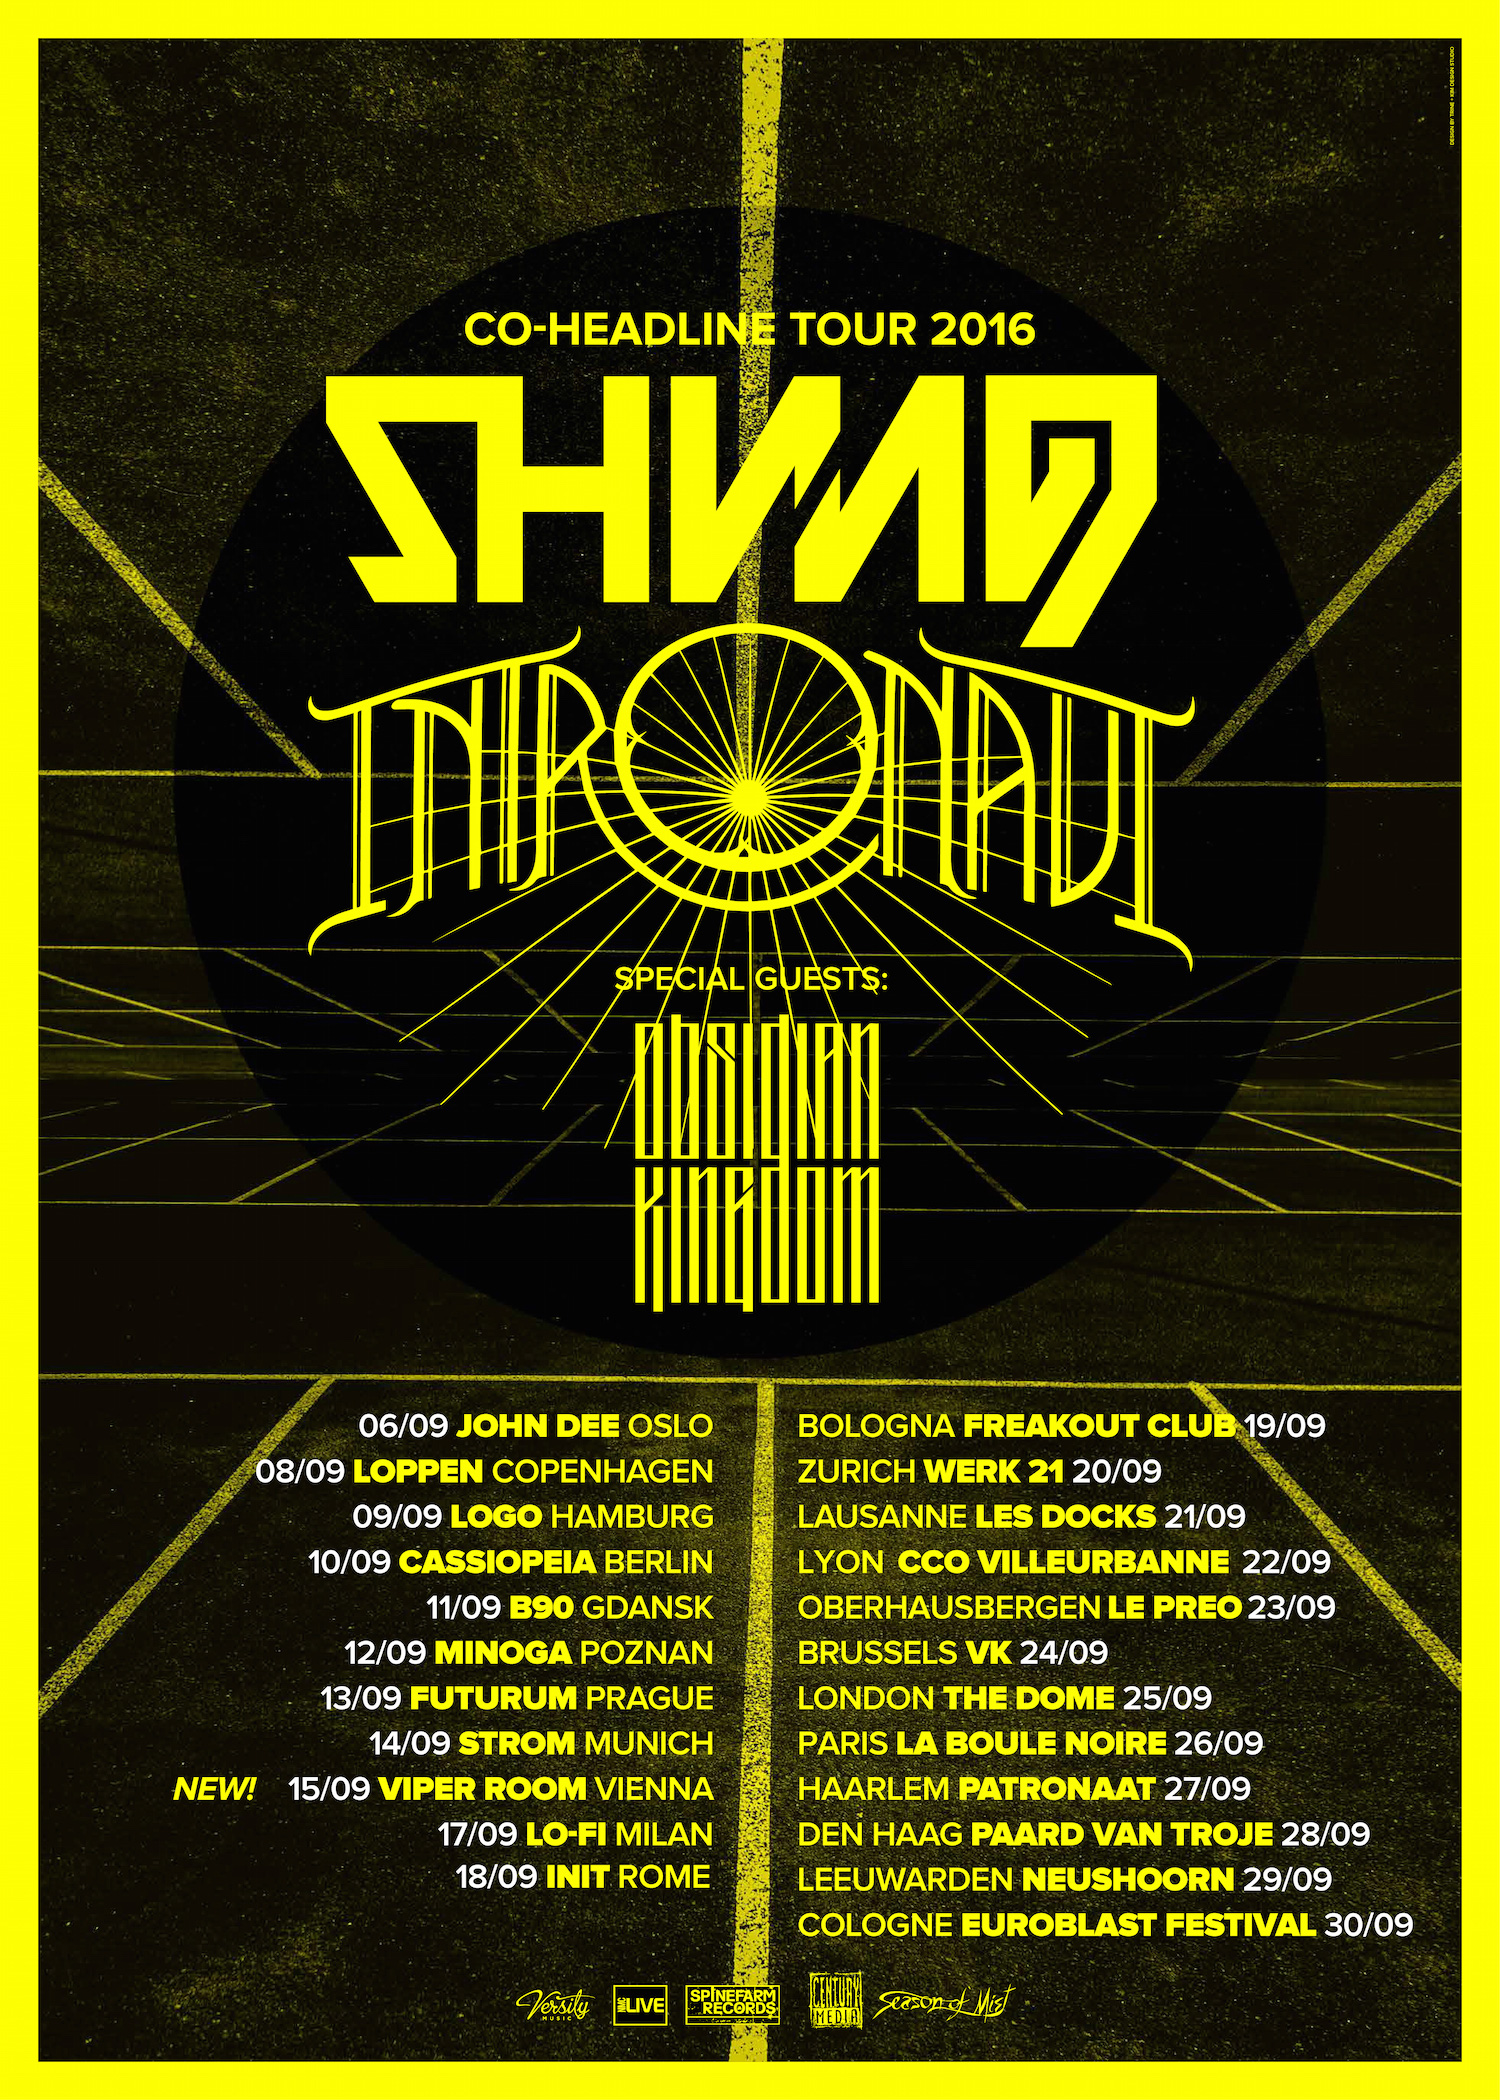 SHINING+INTRONAUT_poster_screen02_+France+DateReverse_V4 larger dates_Logos down_With NEW!_Italic_Paris fix